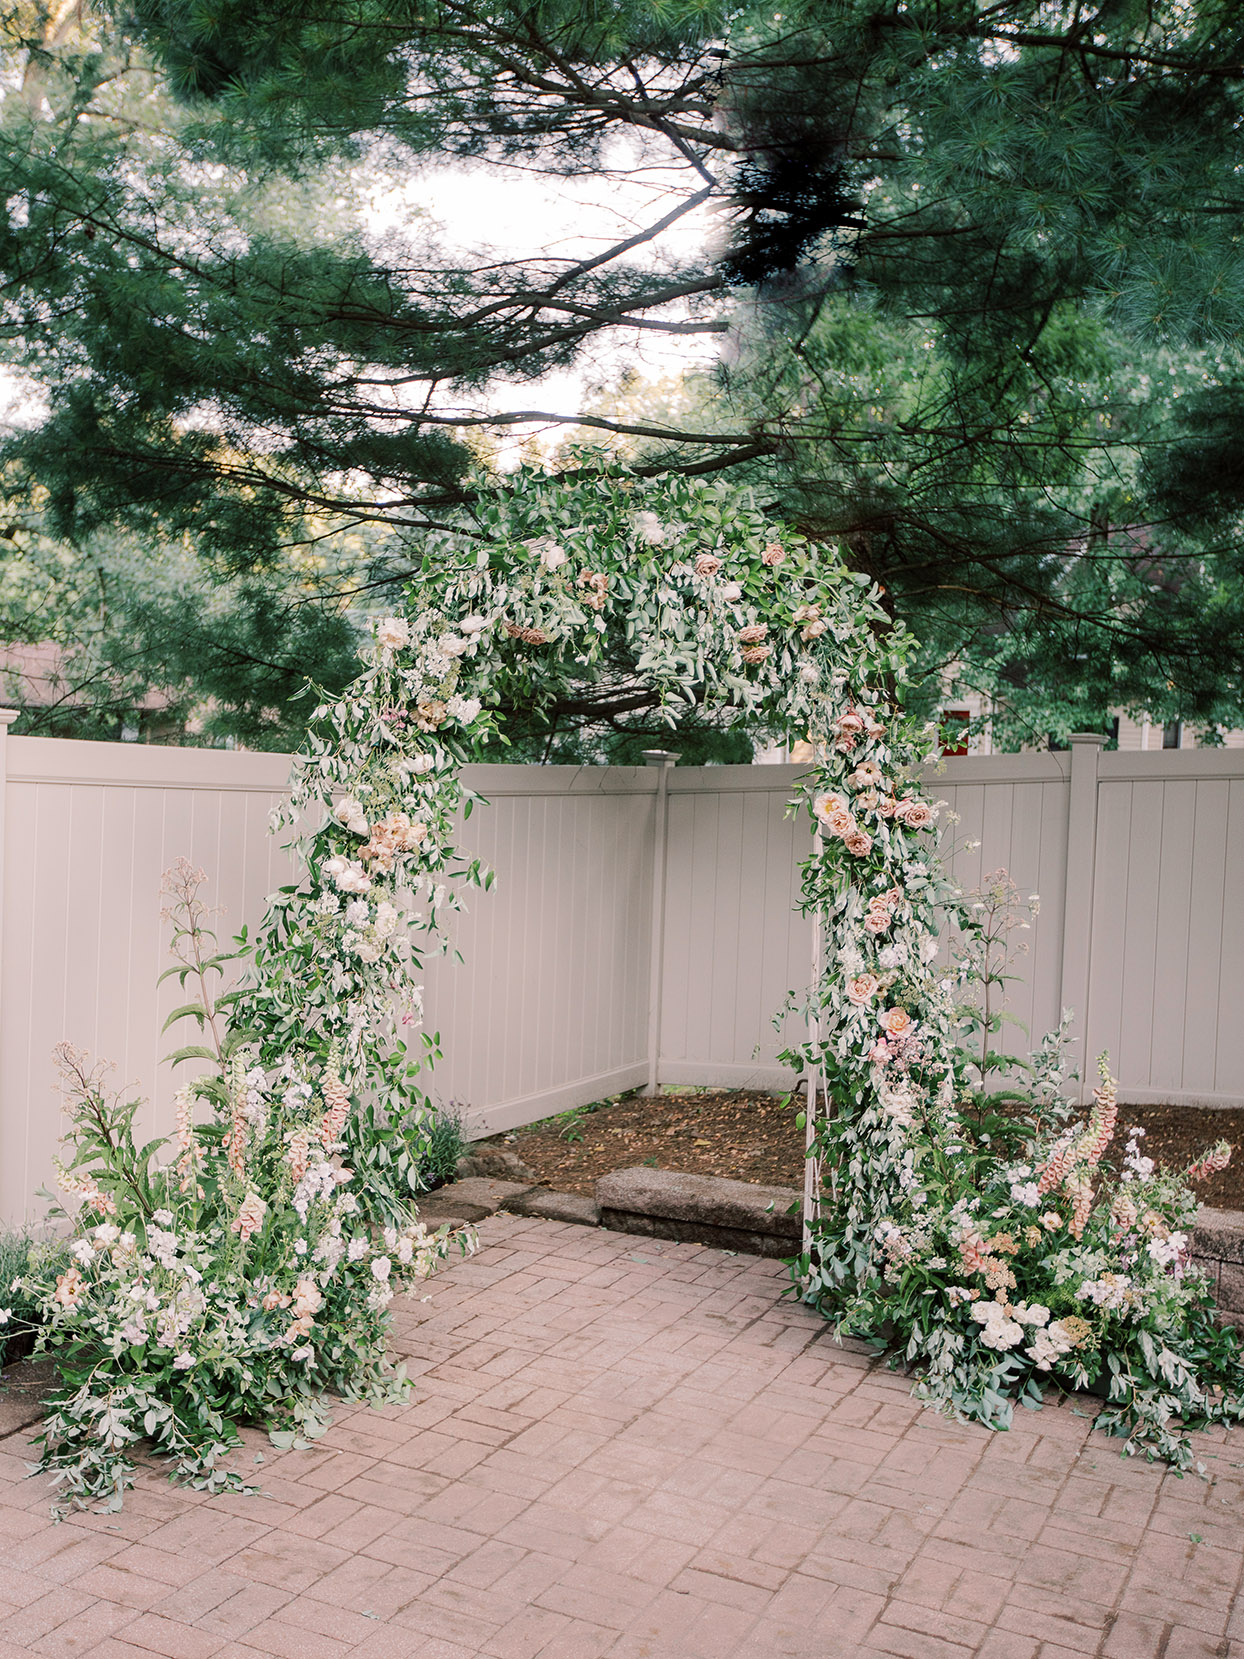 marina evan wedding flower arch ceremony